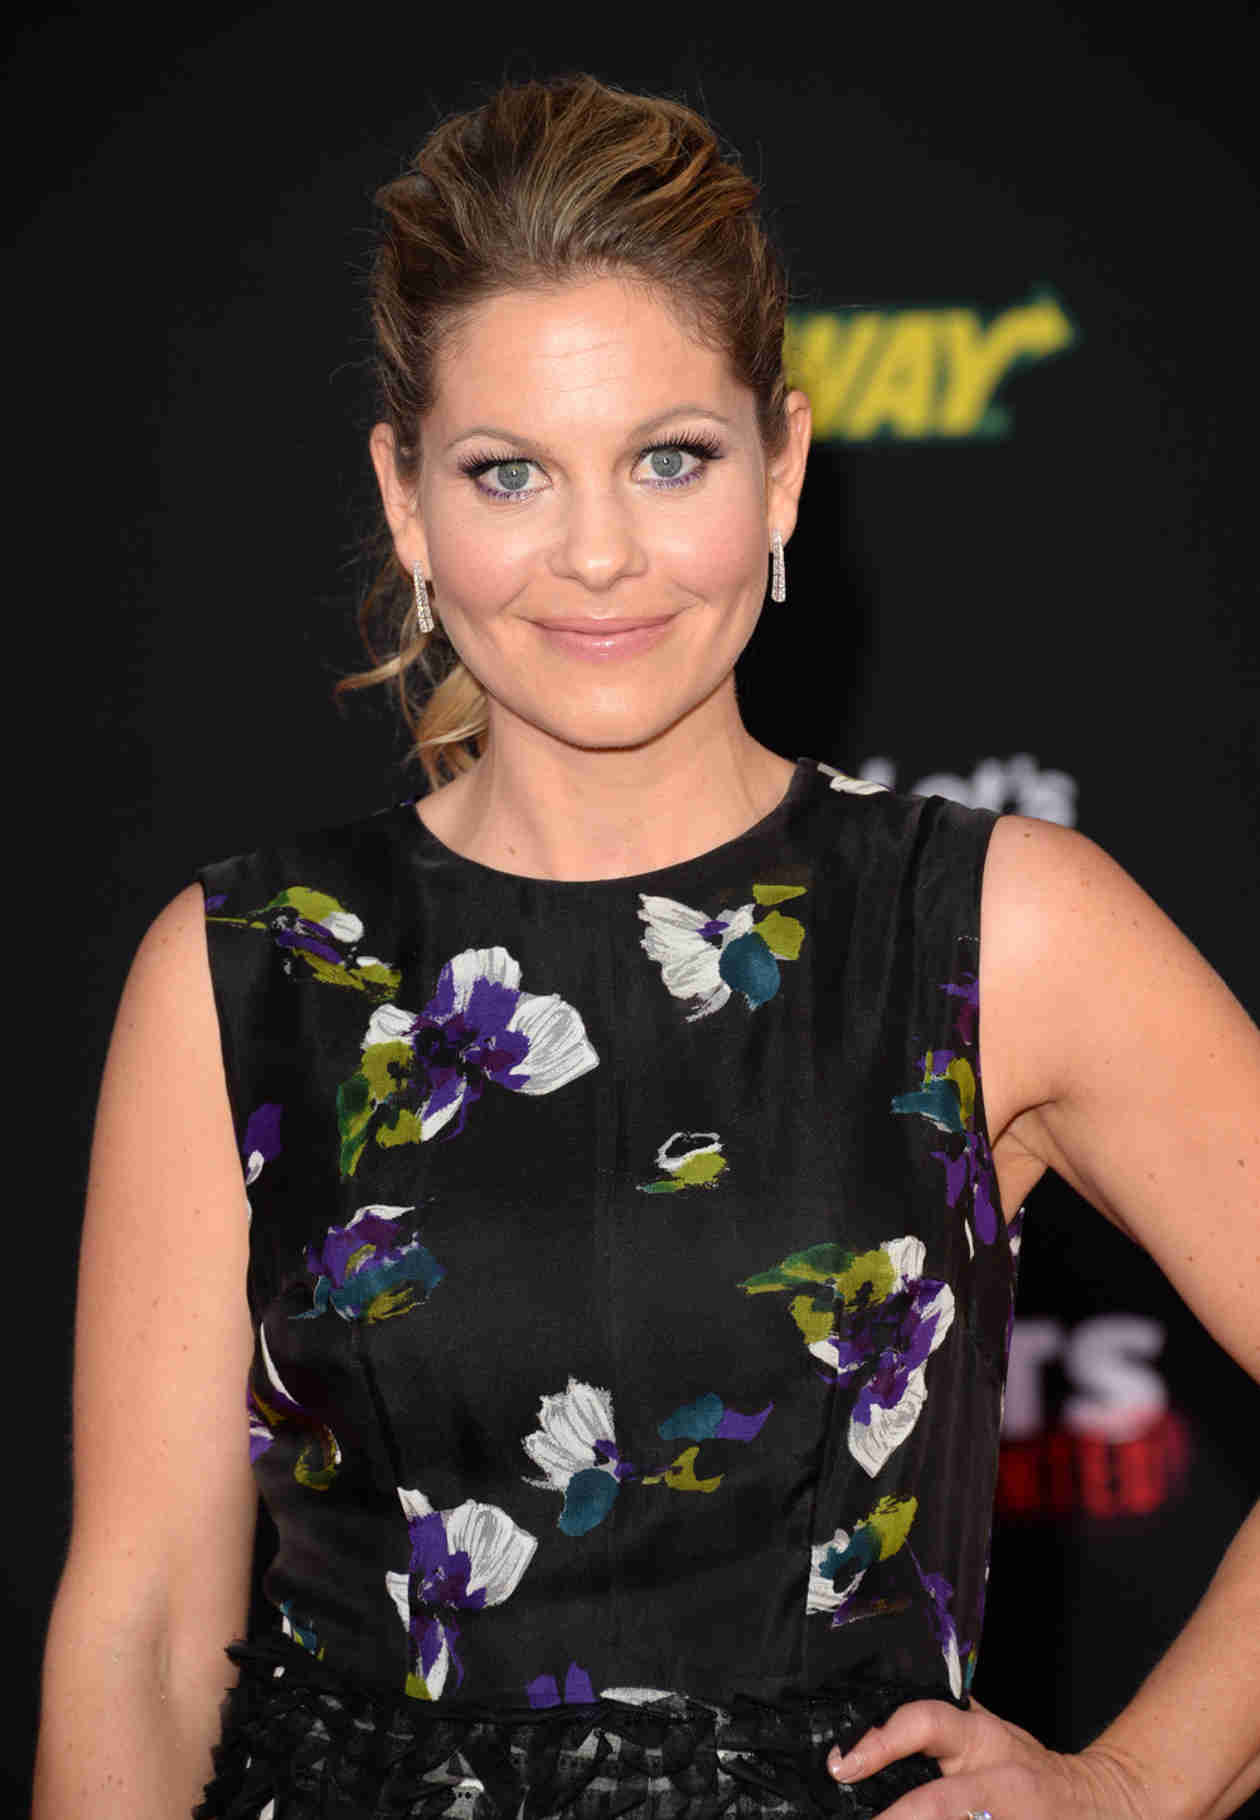 How Old Was Candace Cameron Bure When She Started Full House?